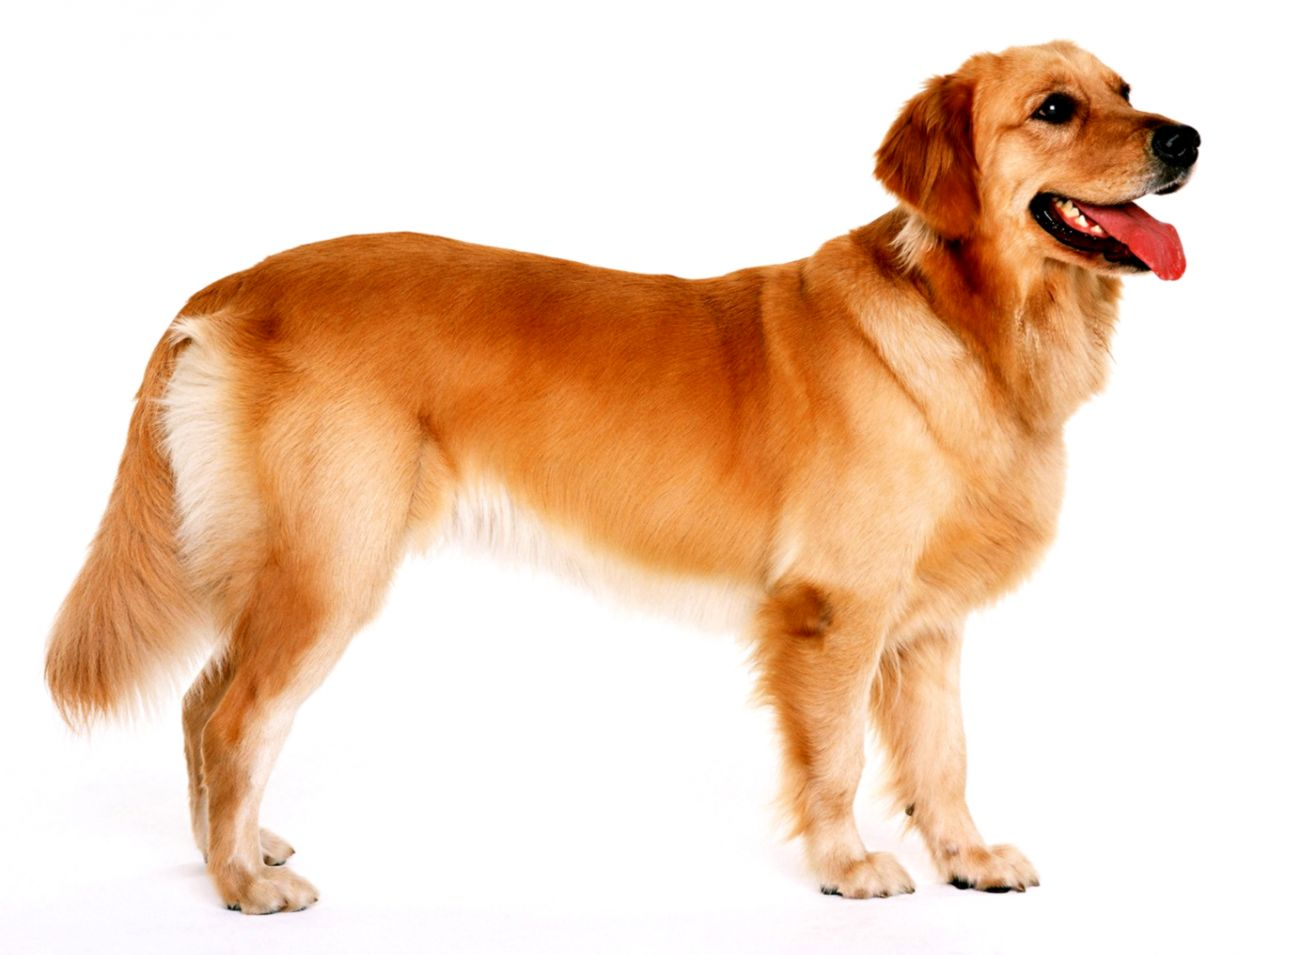 Golden Retriever Puppy Dog New Hd Desktop Wallpapers Free Download